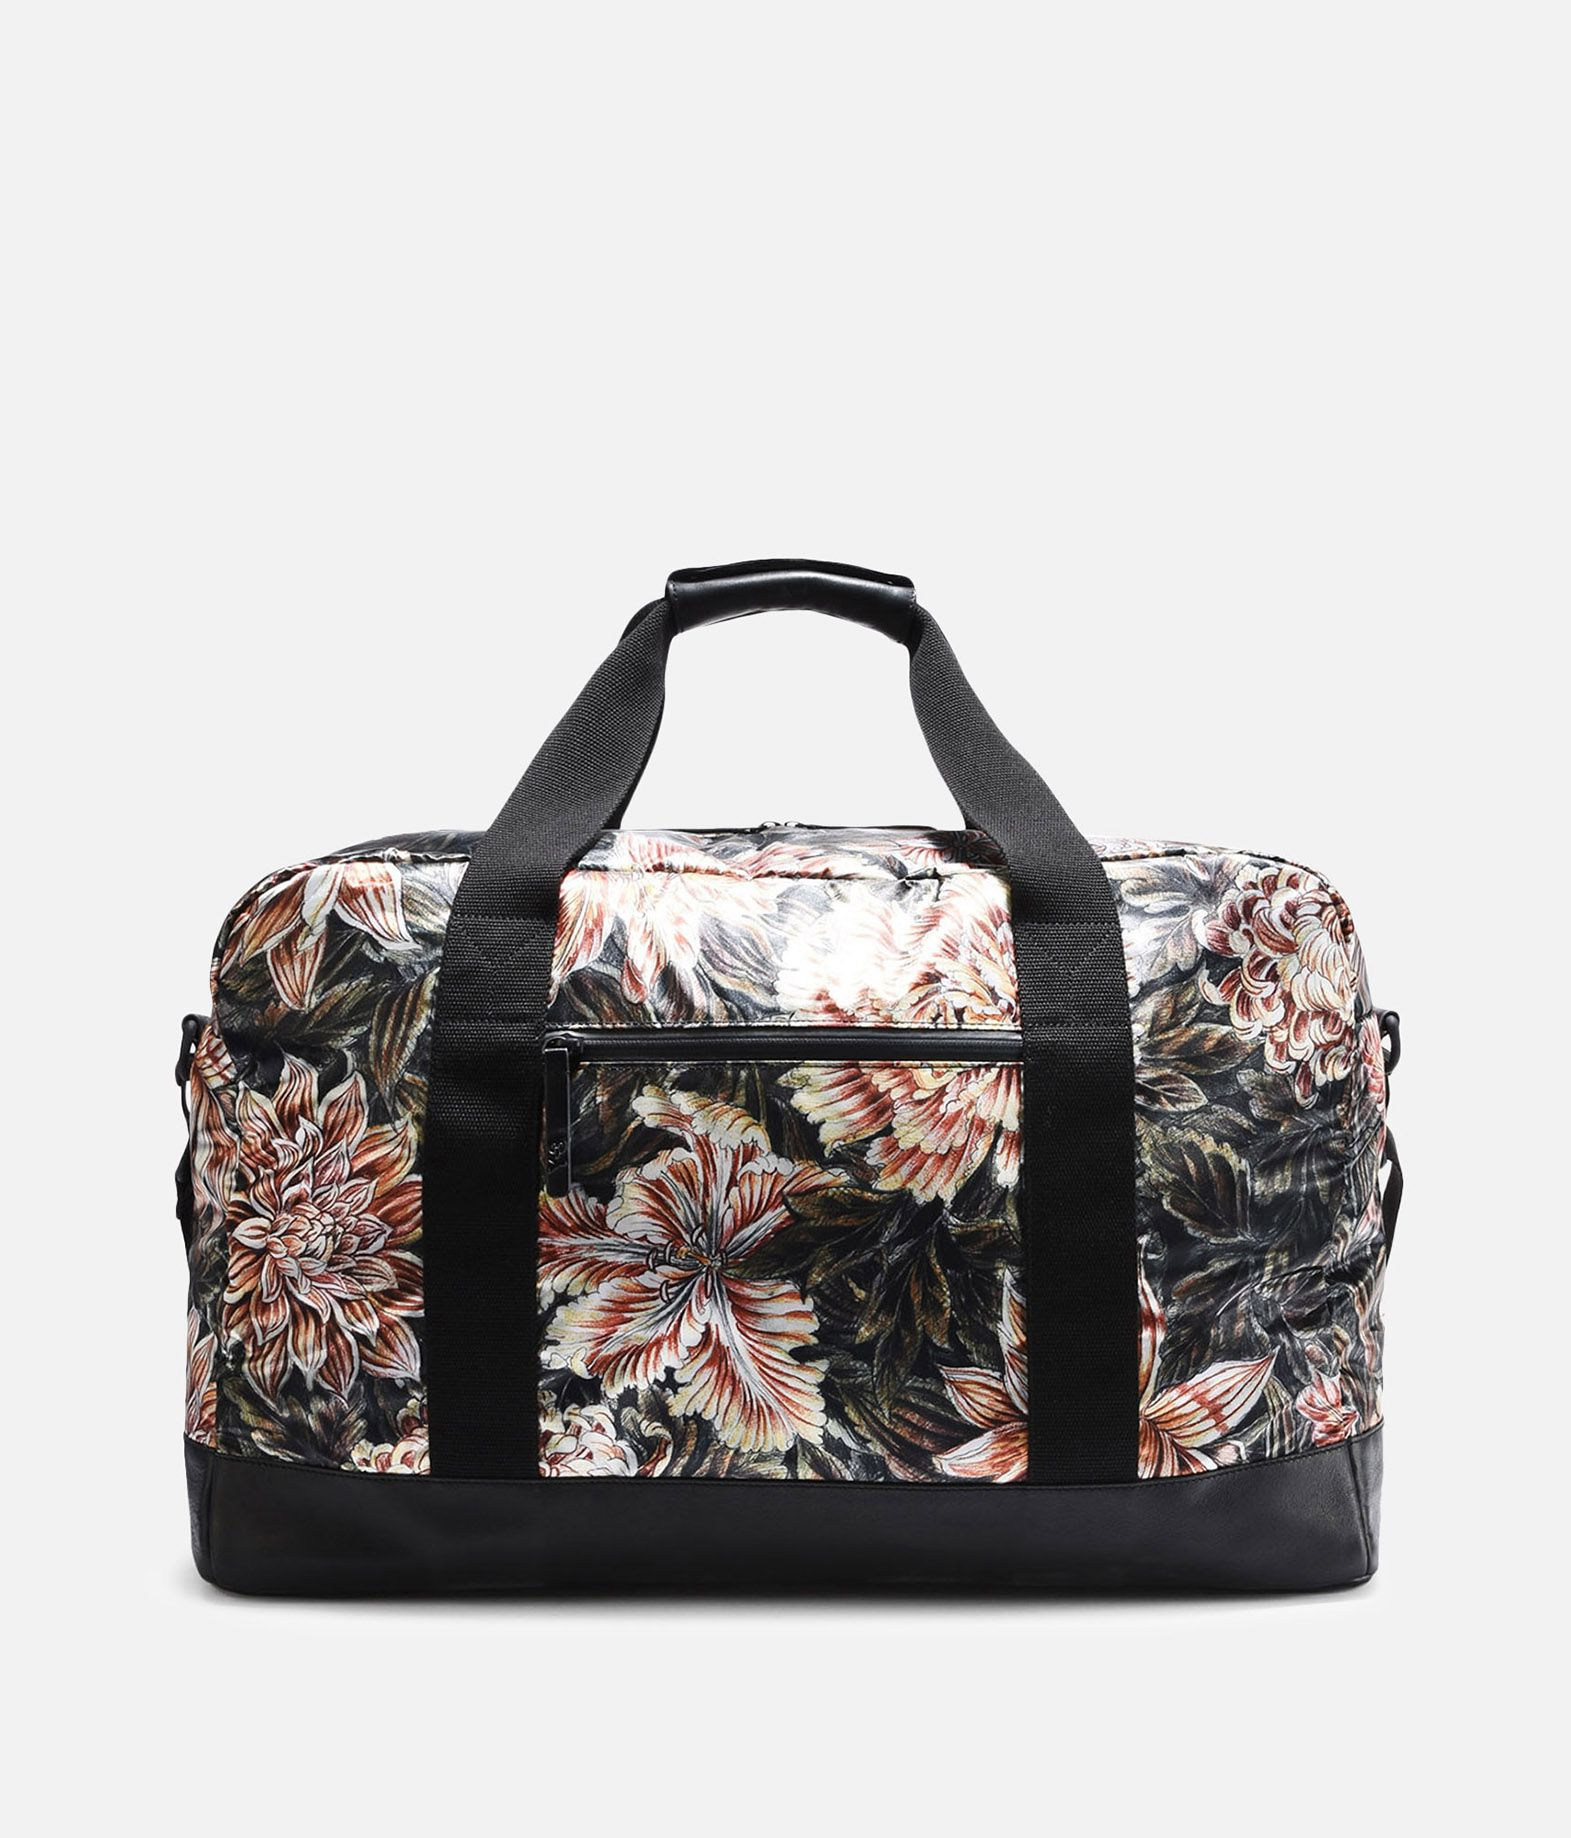 Y-3 Y-3 AOP Weekender Bag Travel bags E d